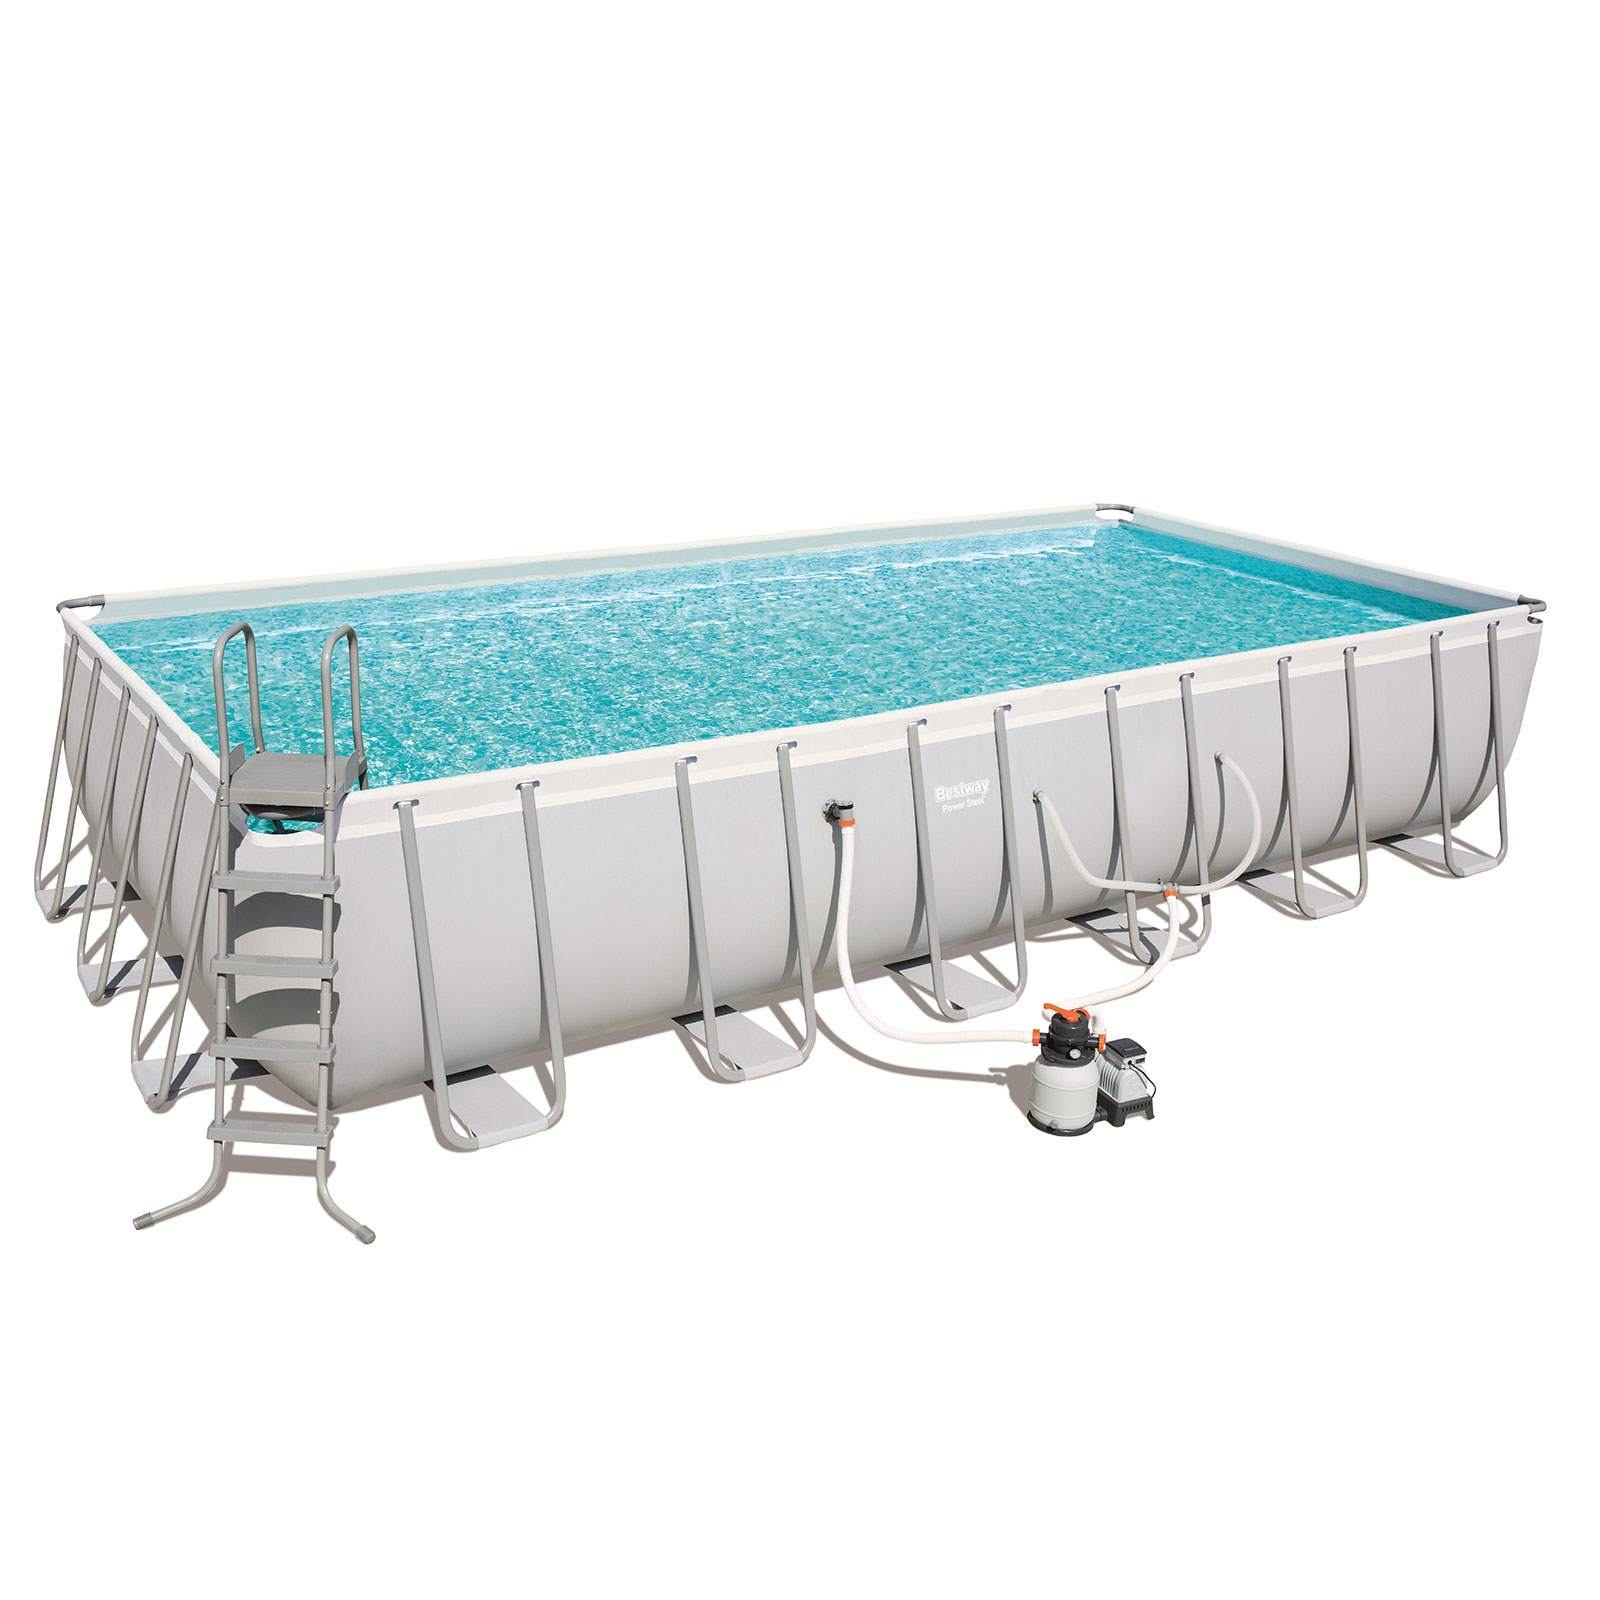 24ft bestway frame above ground swimming pool with for Swimmingpool 3m